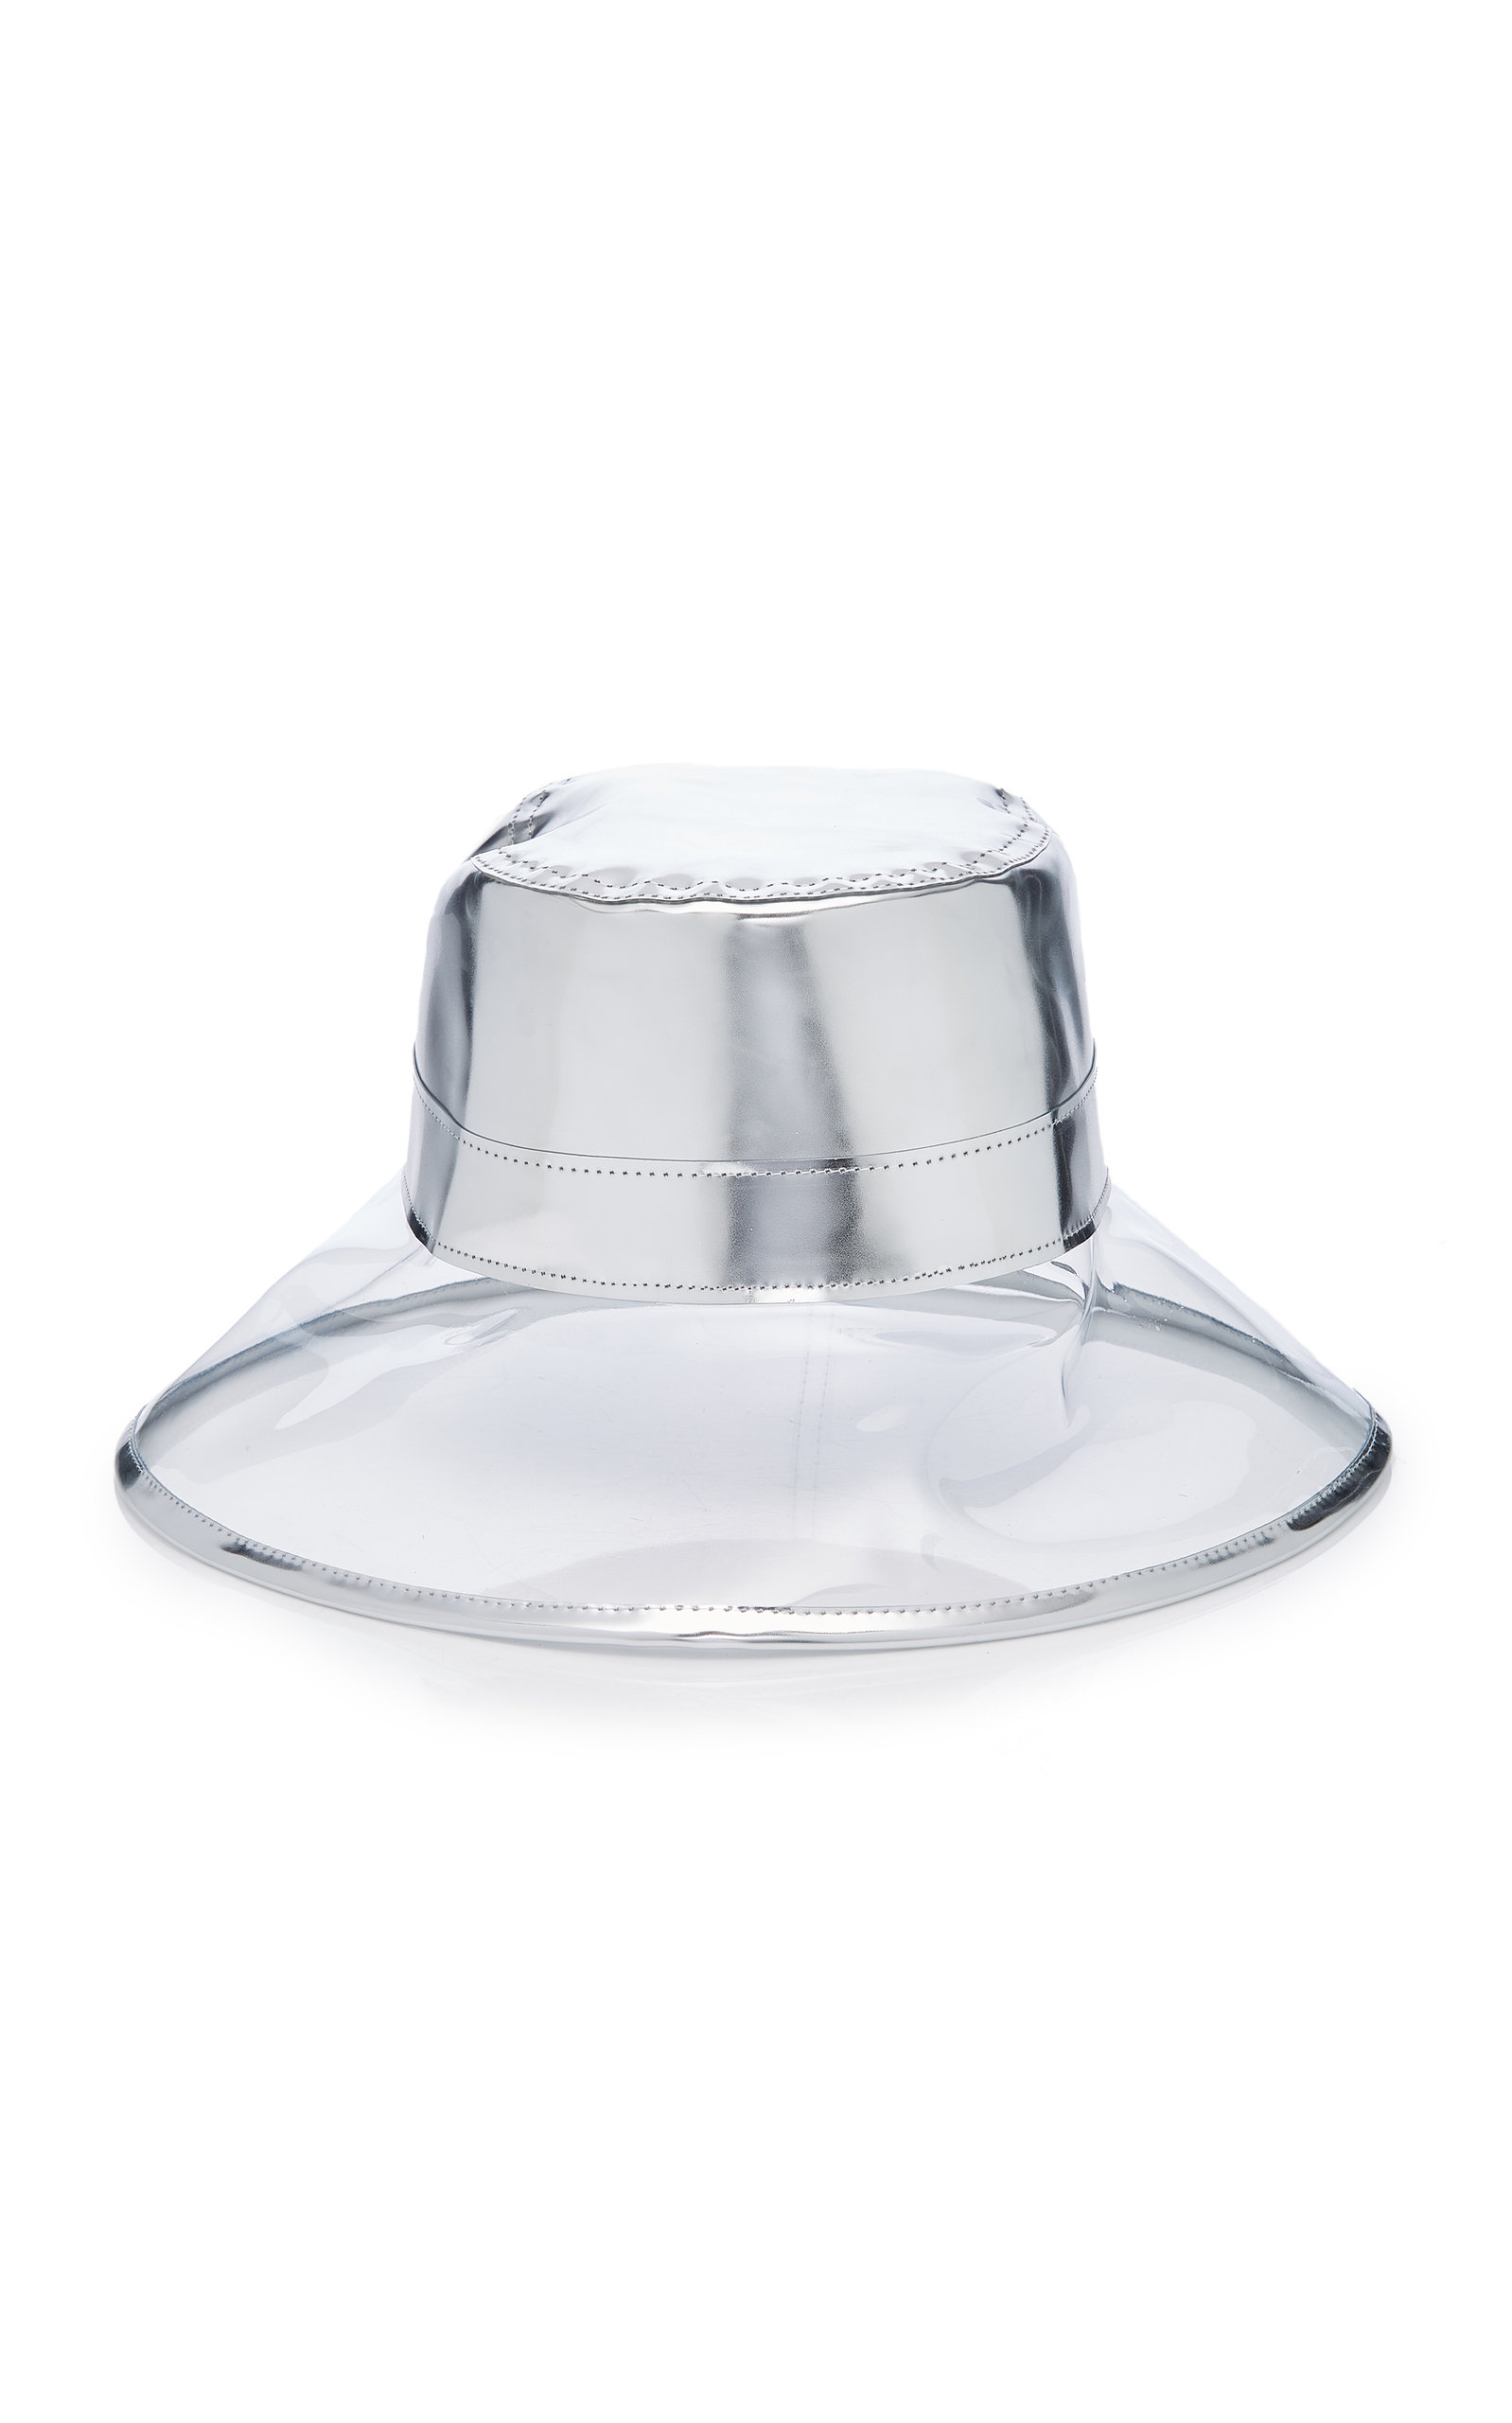 183c37026b2d0 Eric Javits Go-Go Patent Leather And Pvc Bucket Hat In Silver